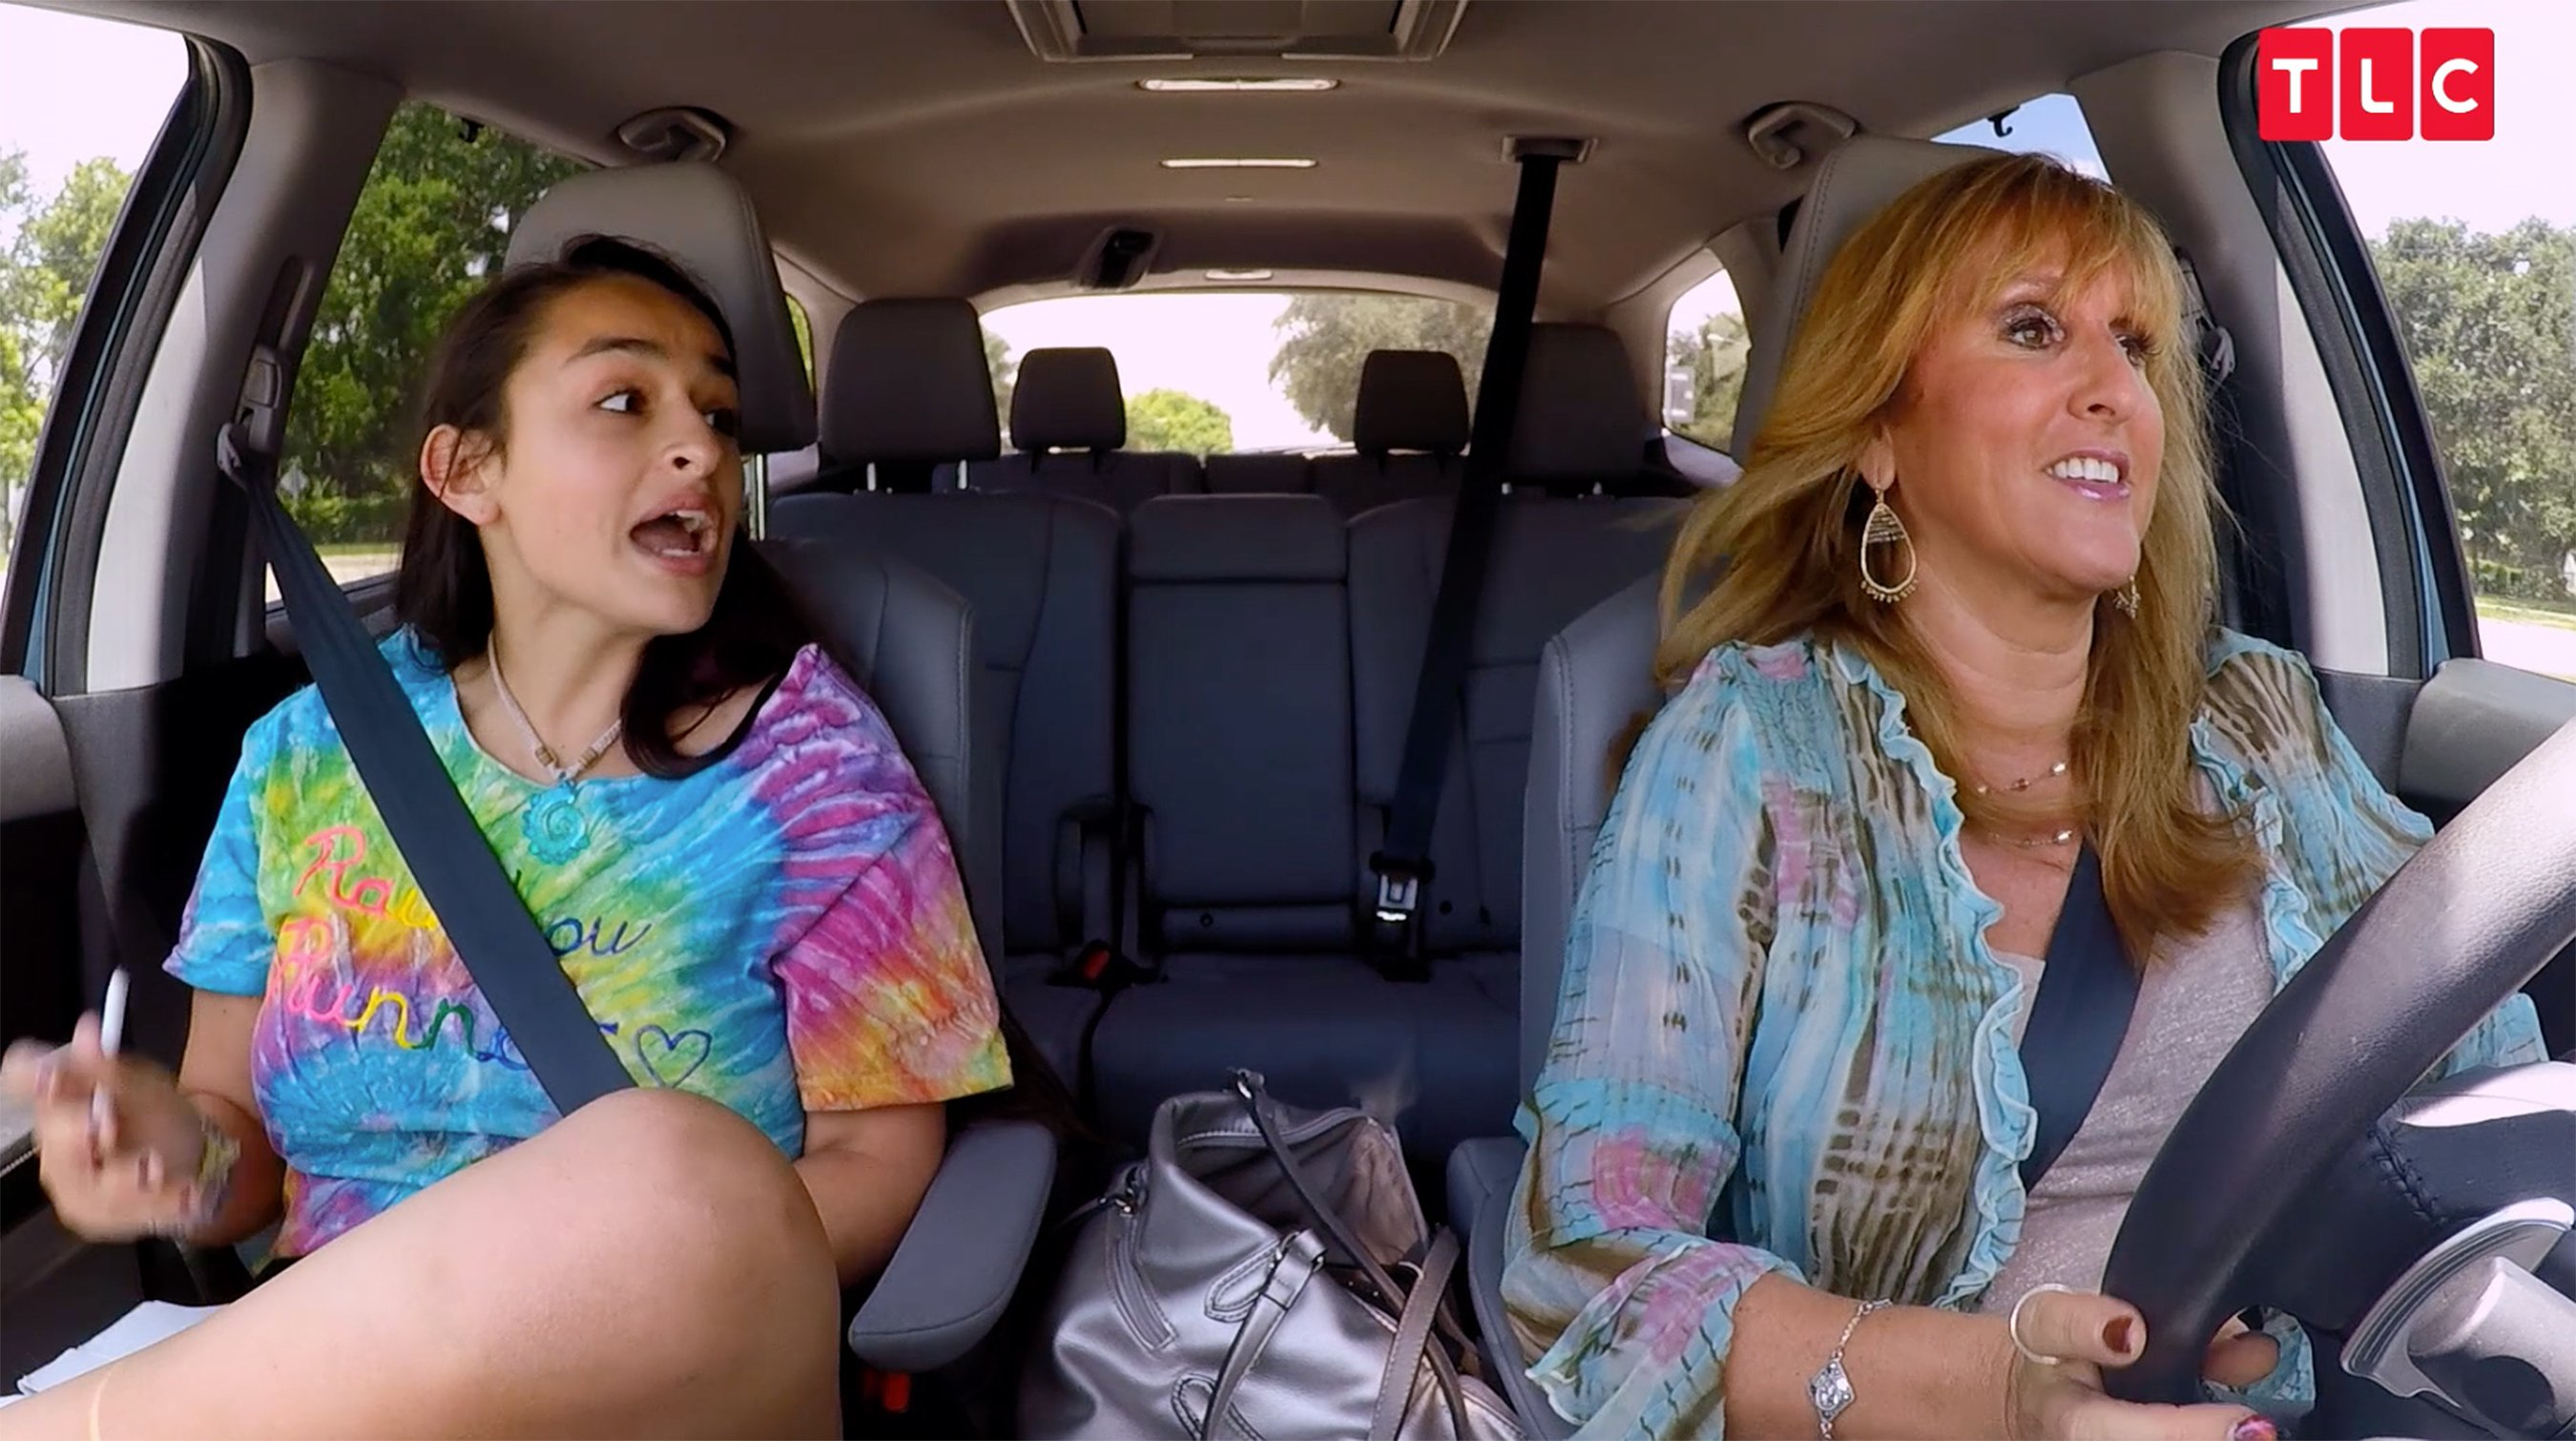 Jazz Jennings Reveals Why She Doesn't Feel Ready for Love After Mom Says She's 'Holding Back'